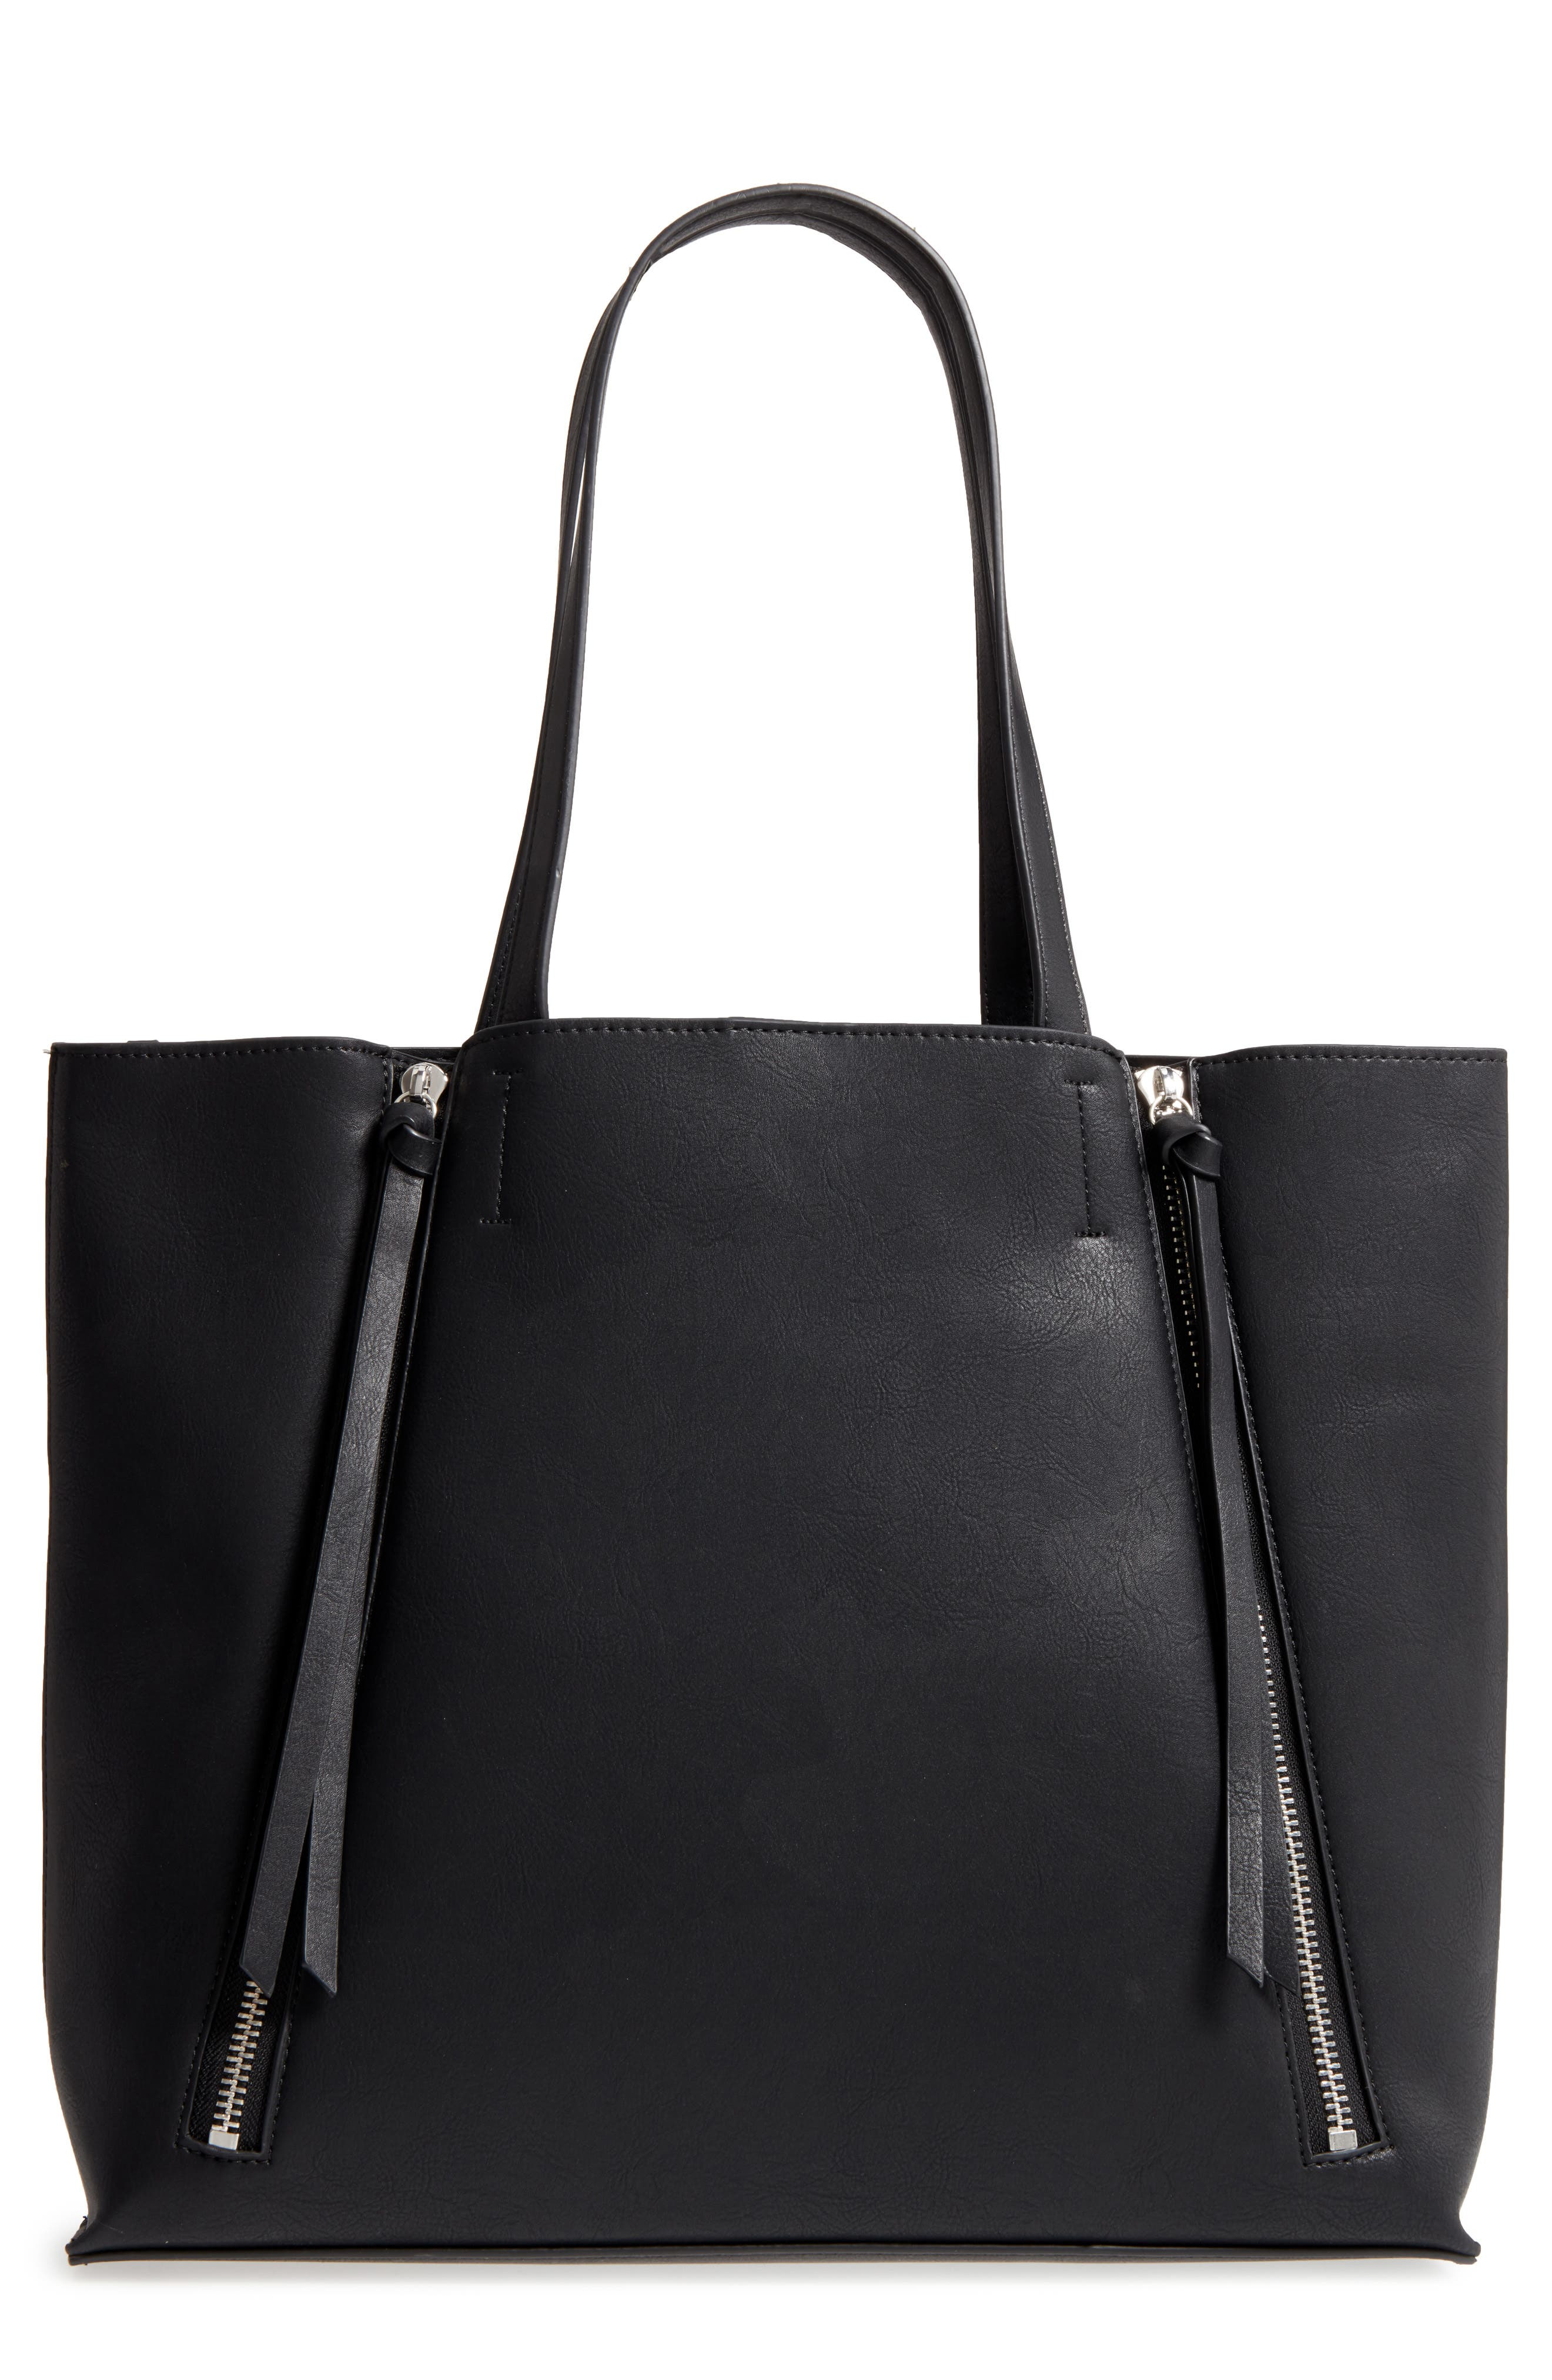 Chelsea28 Leigh Faux Leather Tote & Zip Pouch